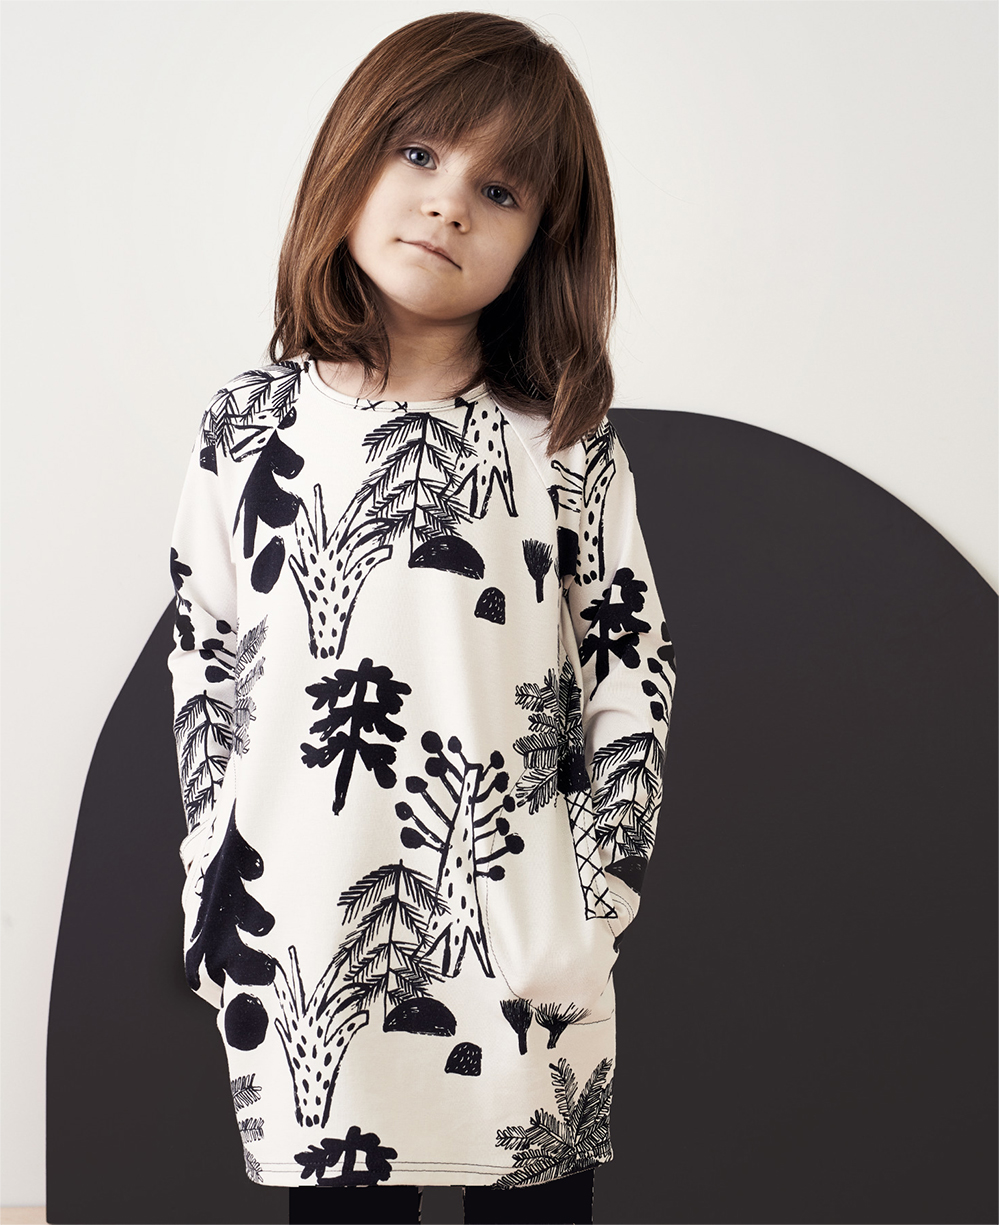 oval_tunic_hidden_forest_aatio_papu_3.jpg